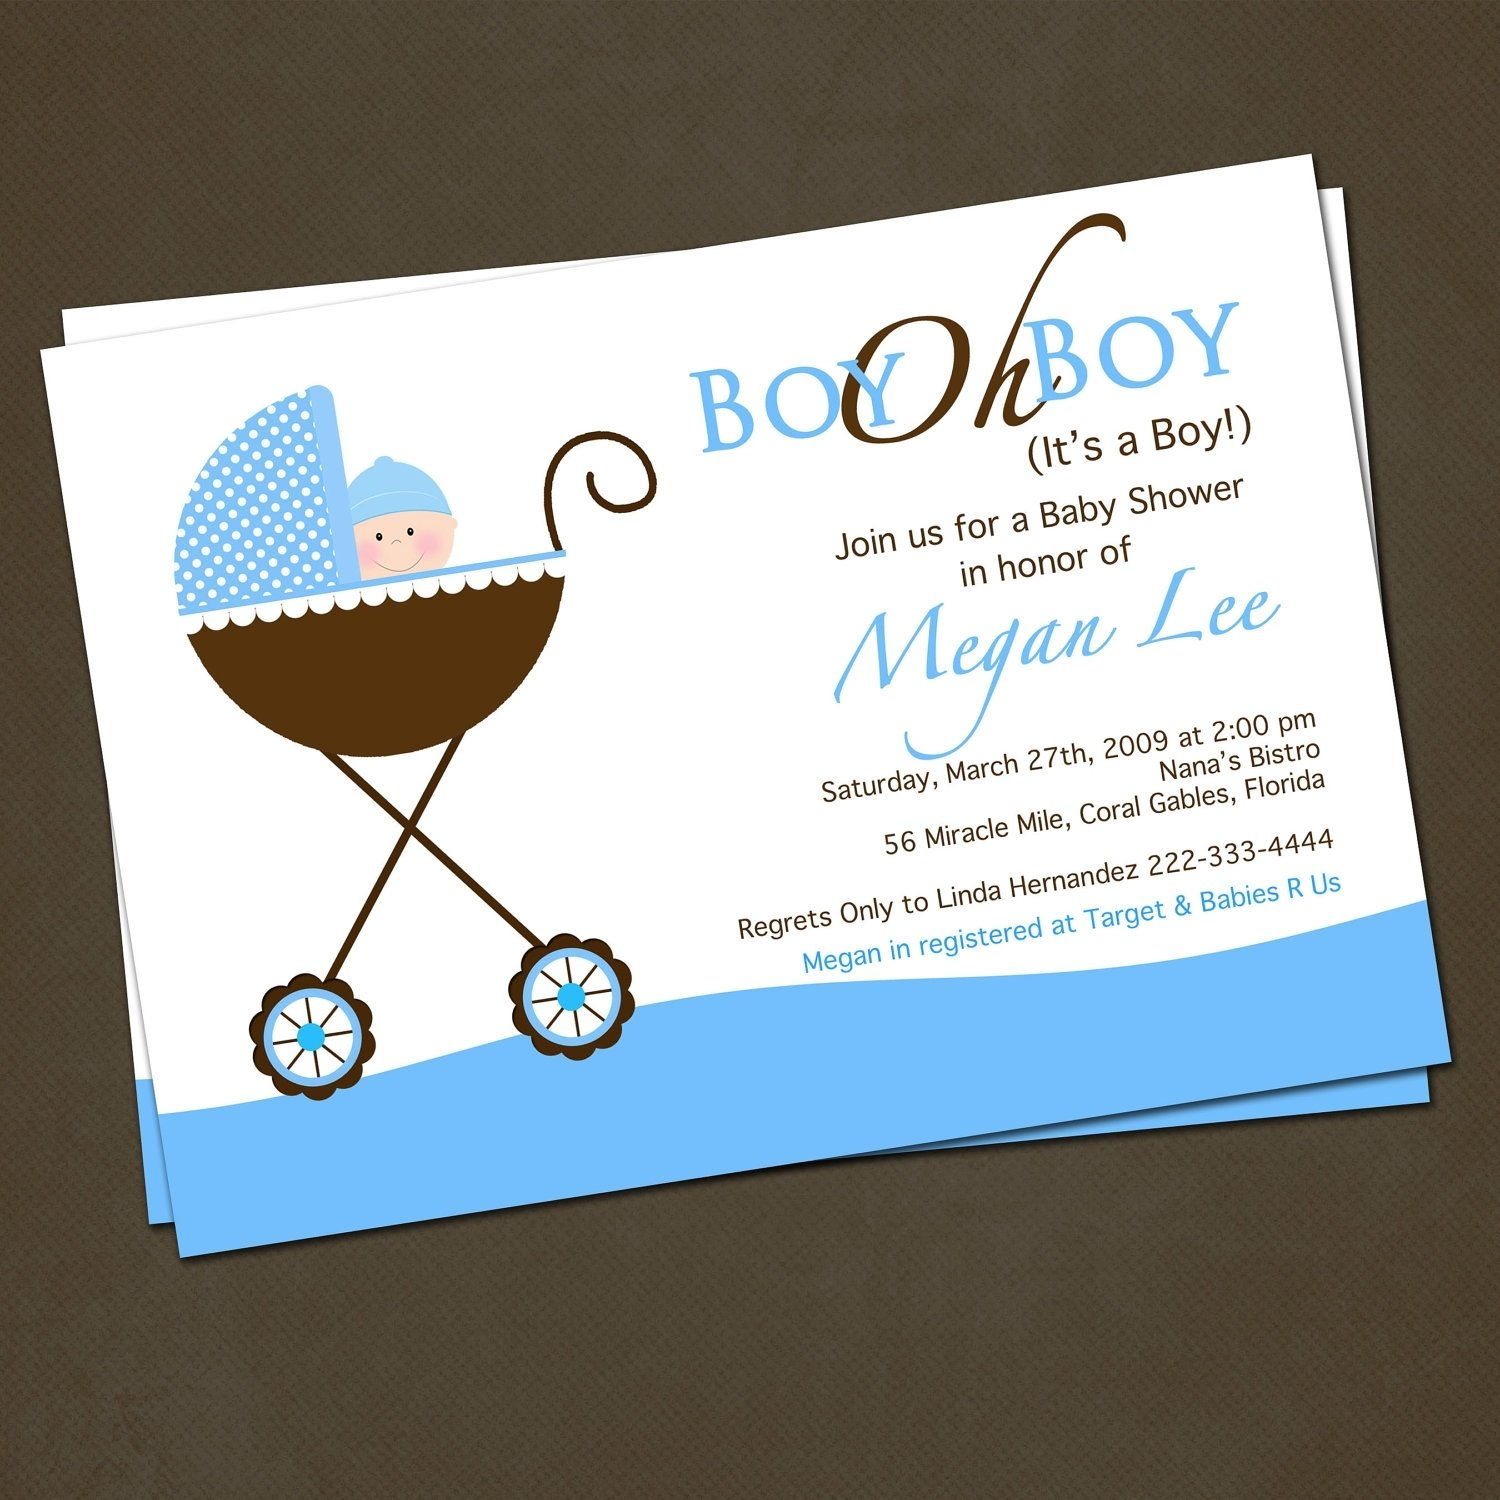 10 Awesome Baby Shower Invitation Ideas For Boys